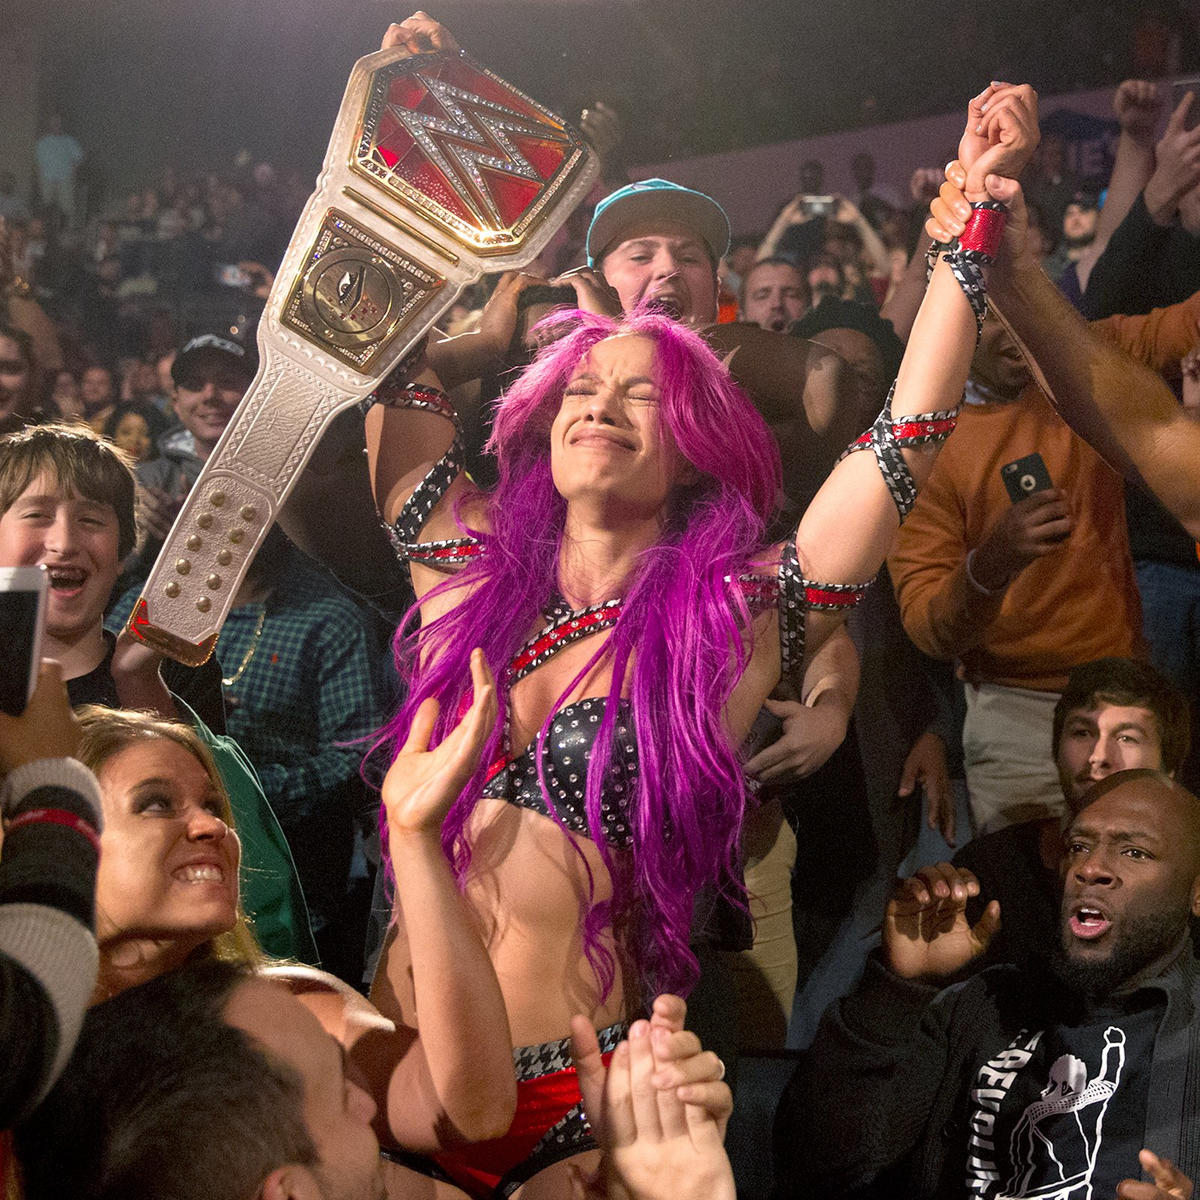 Sasha Banks wins Raw Women's Championship: Raw, Nov. 28, 2016